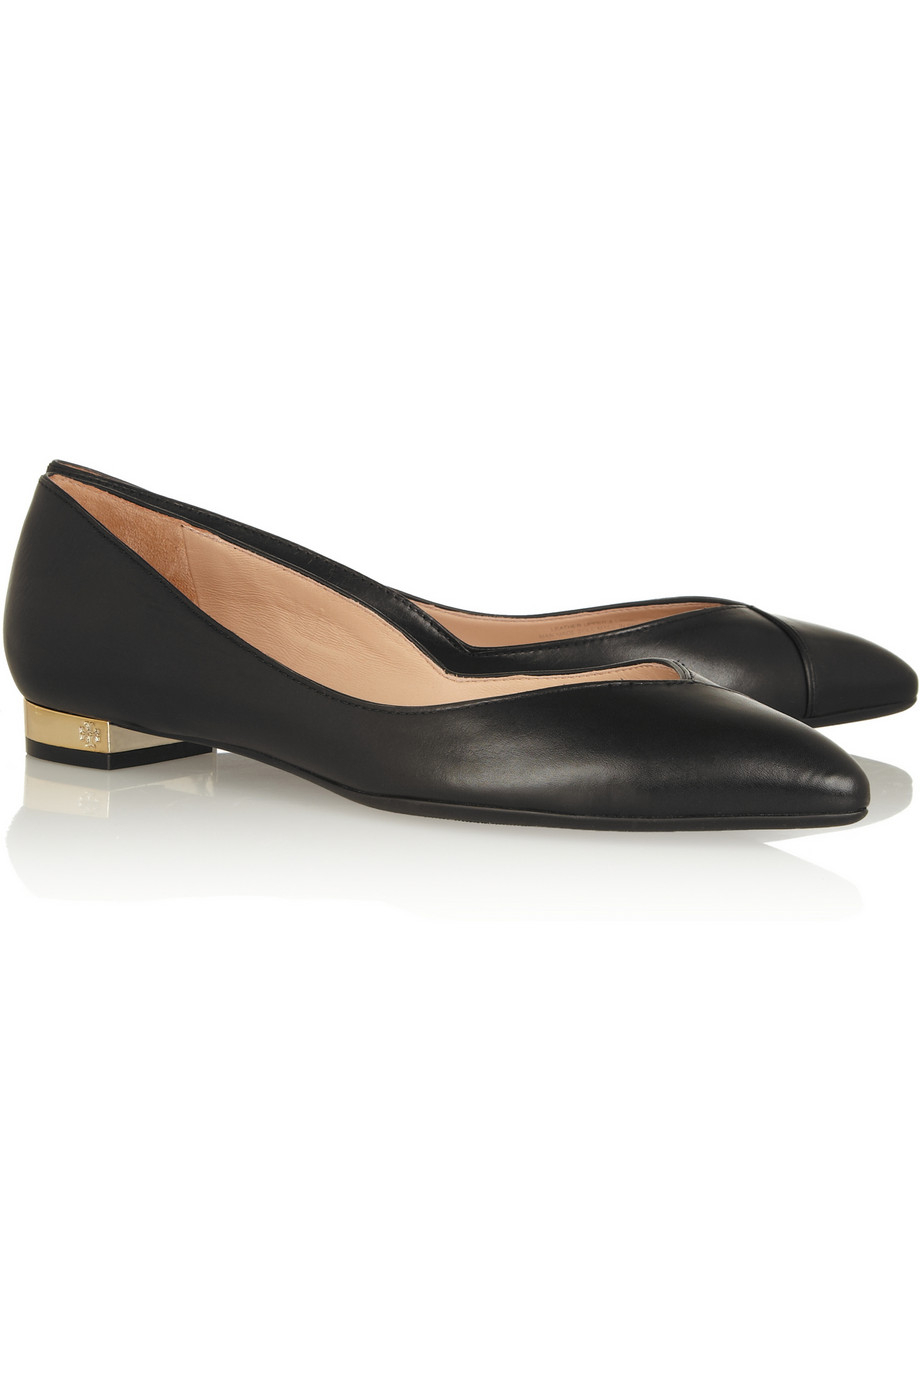 Lyst Tory Burch Nicki Point Toe Leather Flats In Black